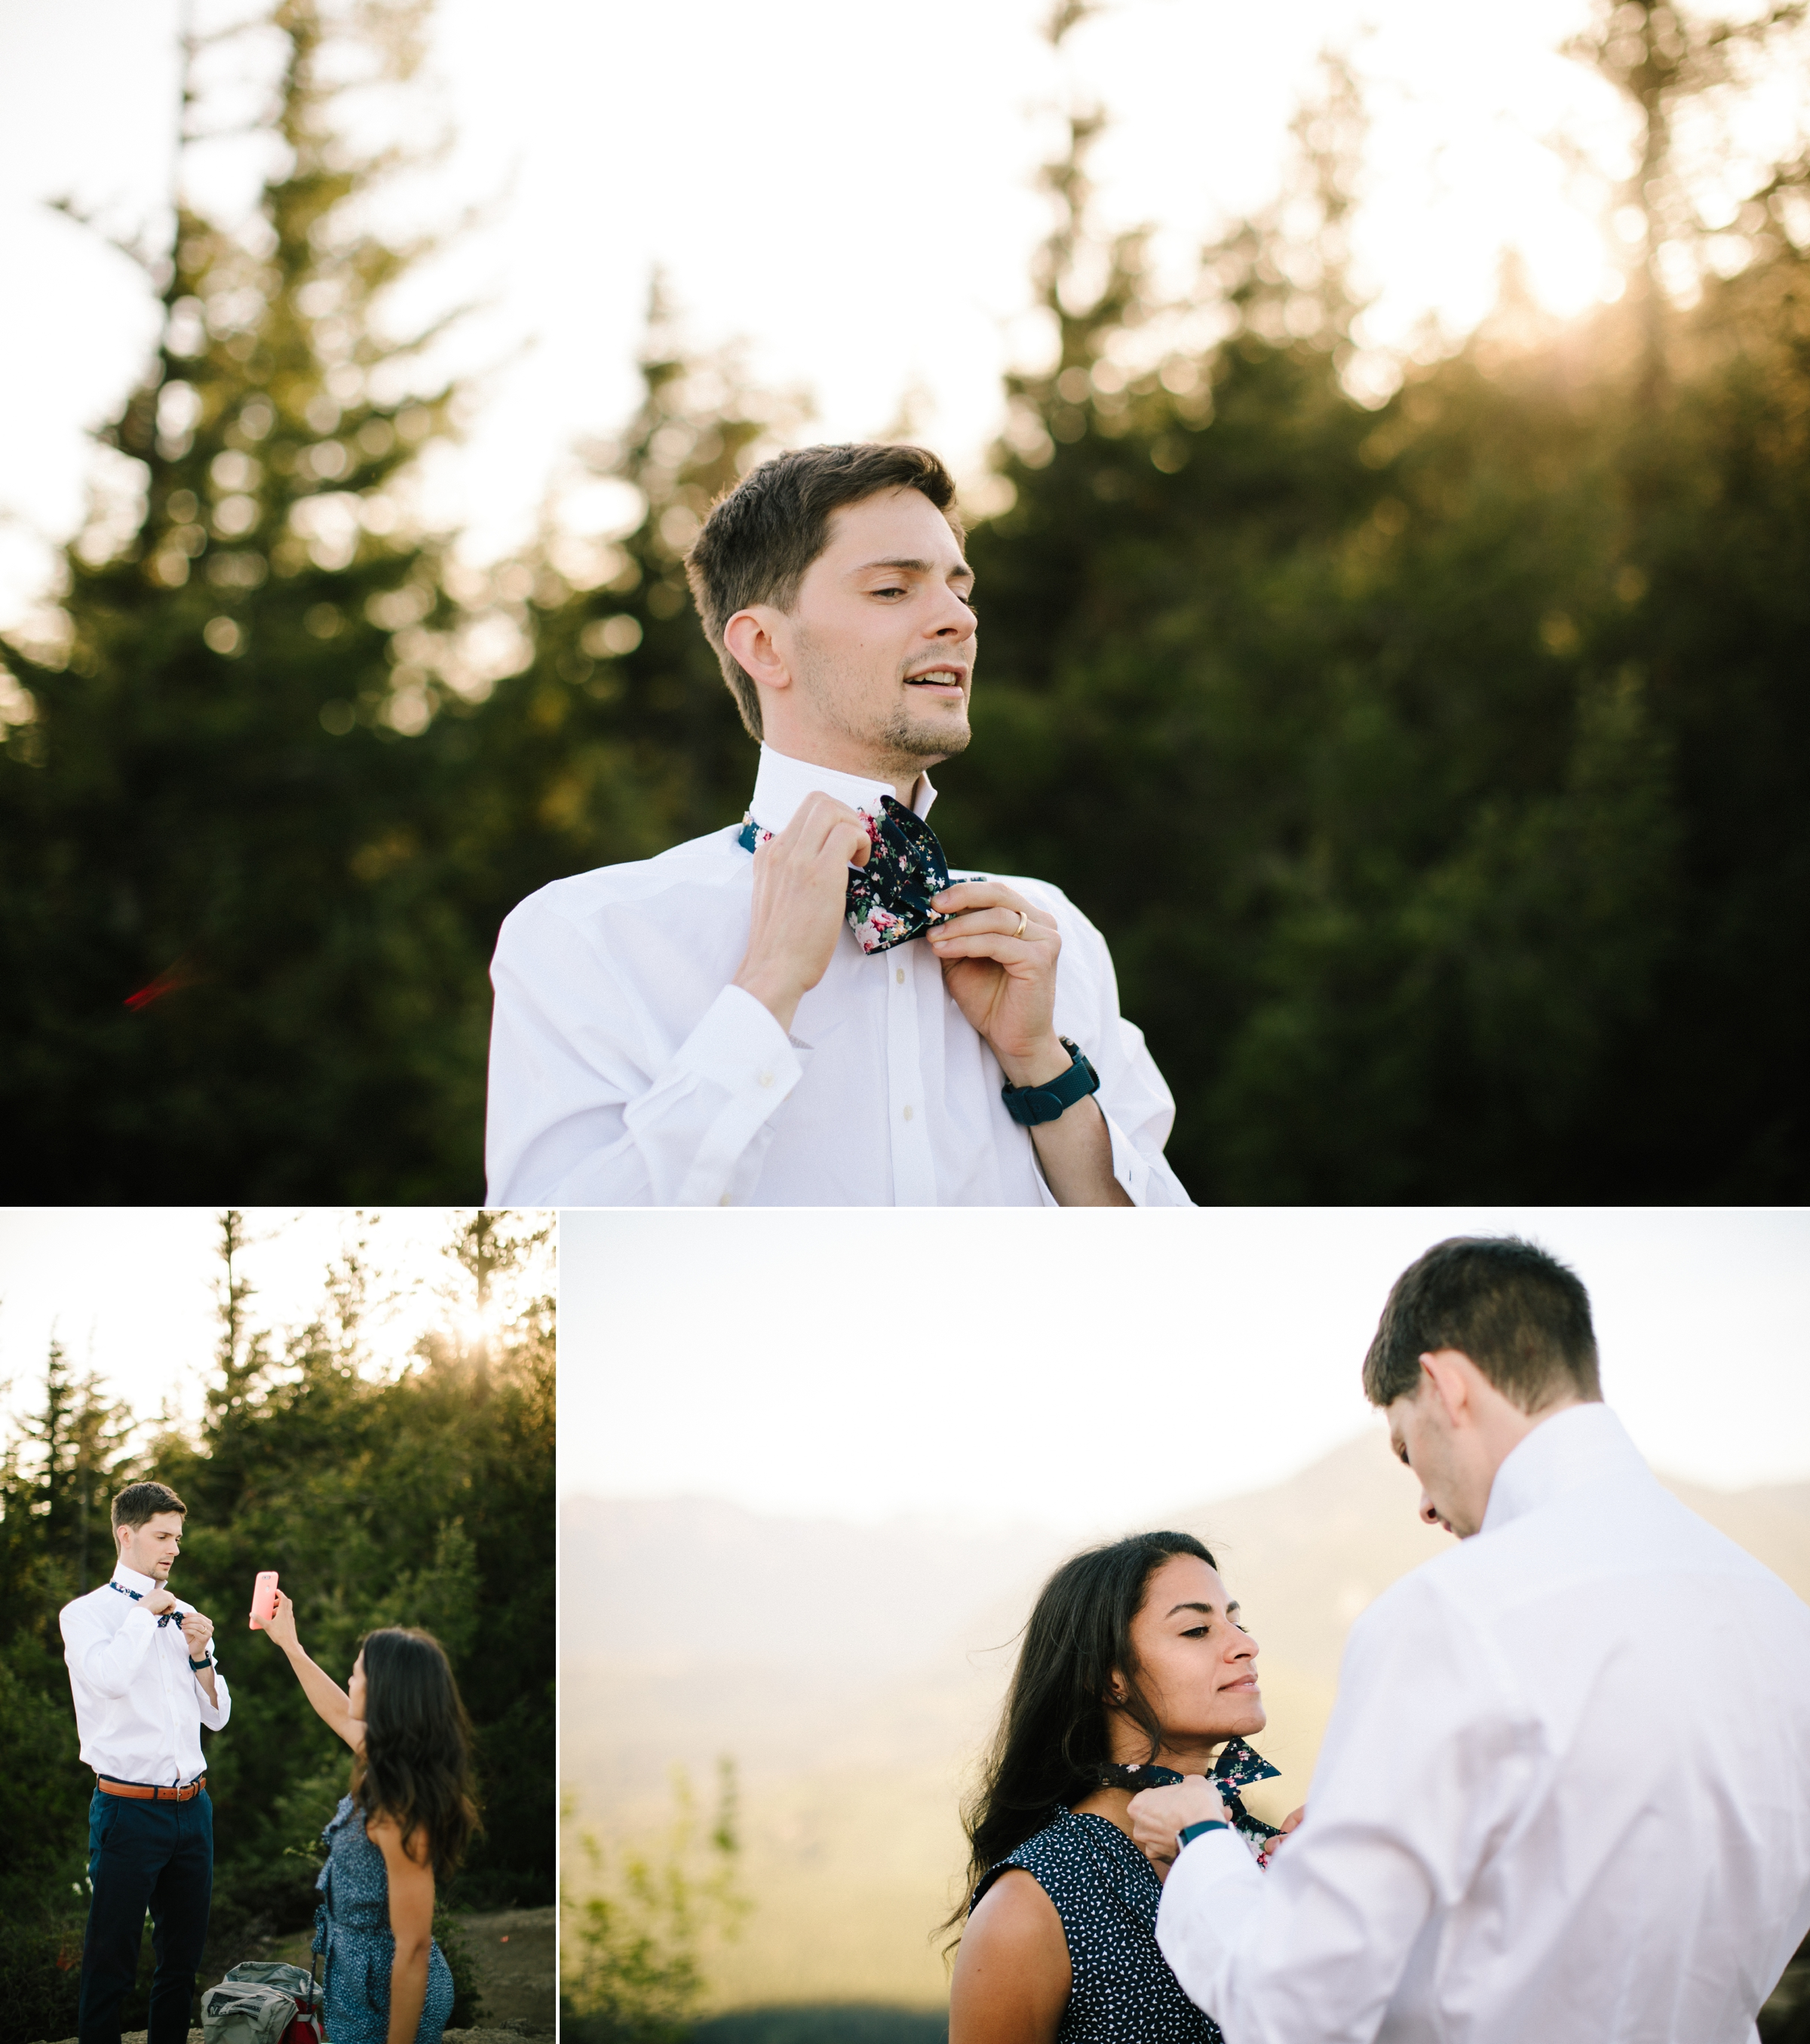 adventure-mountain-top-elopement-photographer-pnw-seattle-washington-wedding-engagement-hike-photography-catie-bergman_0001.jpg